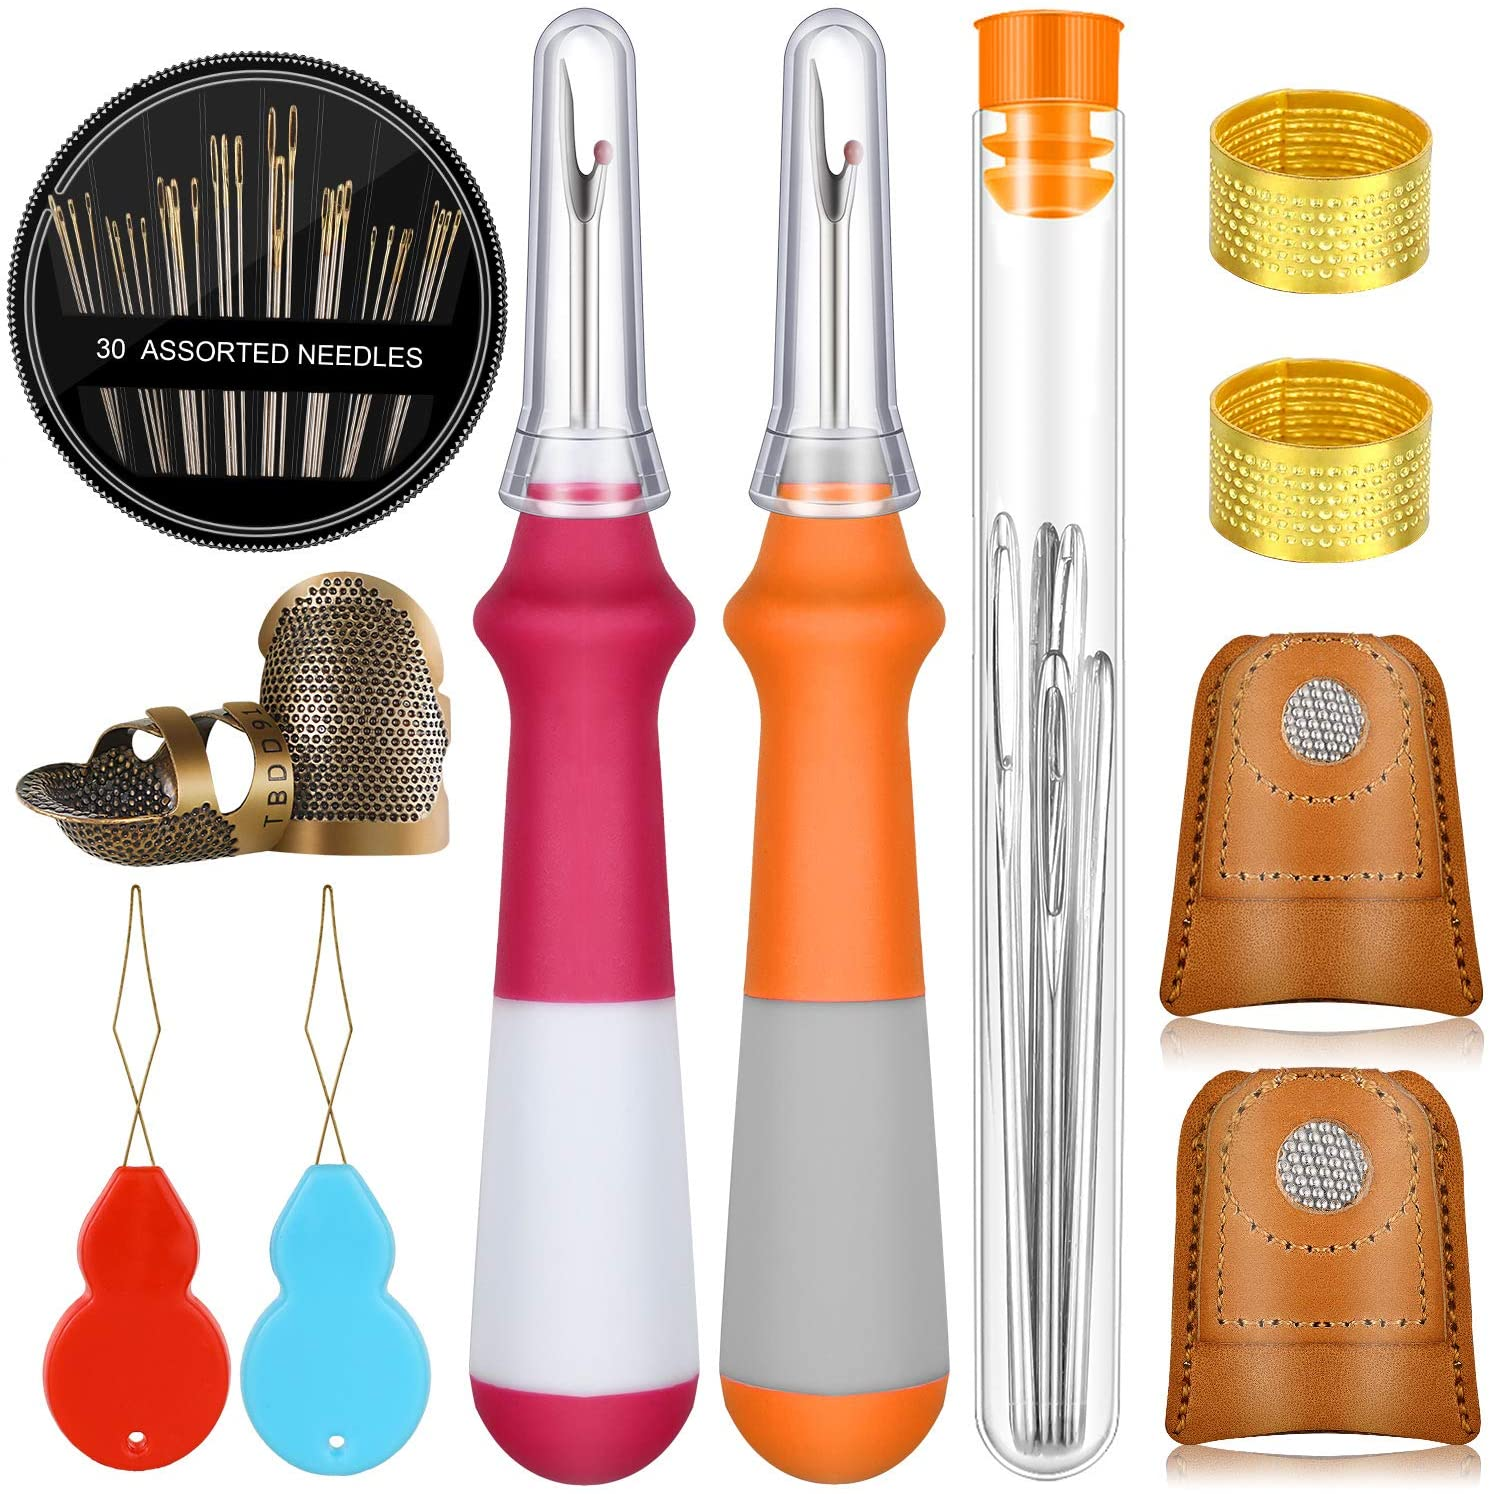 50 Pieces Sewing Tools Kit Includes 6 Sewing Thimble Finger Protector, 30 Hand Sewing Needle, 9 Large-Eye Knitting Needle, 2 Seam Ripper, 2 Wire Needle Threader and Storage Bottle